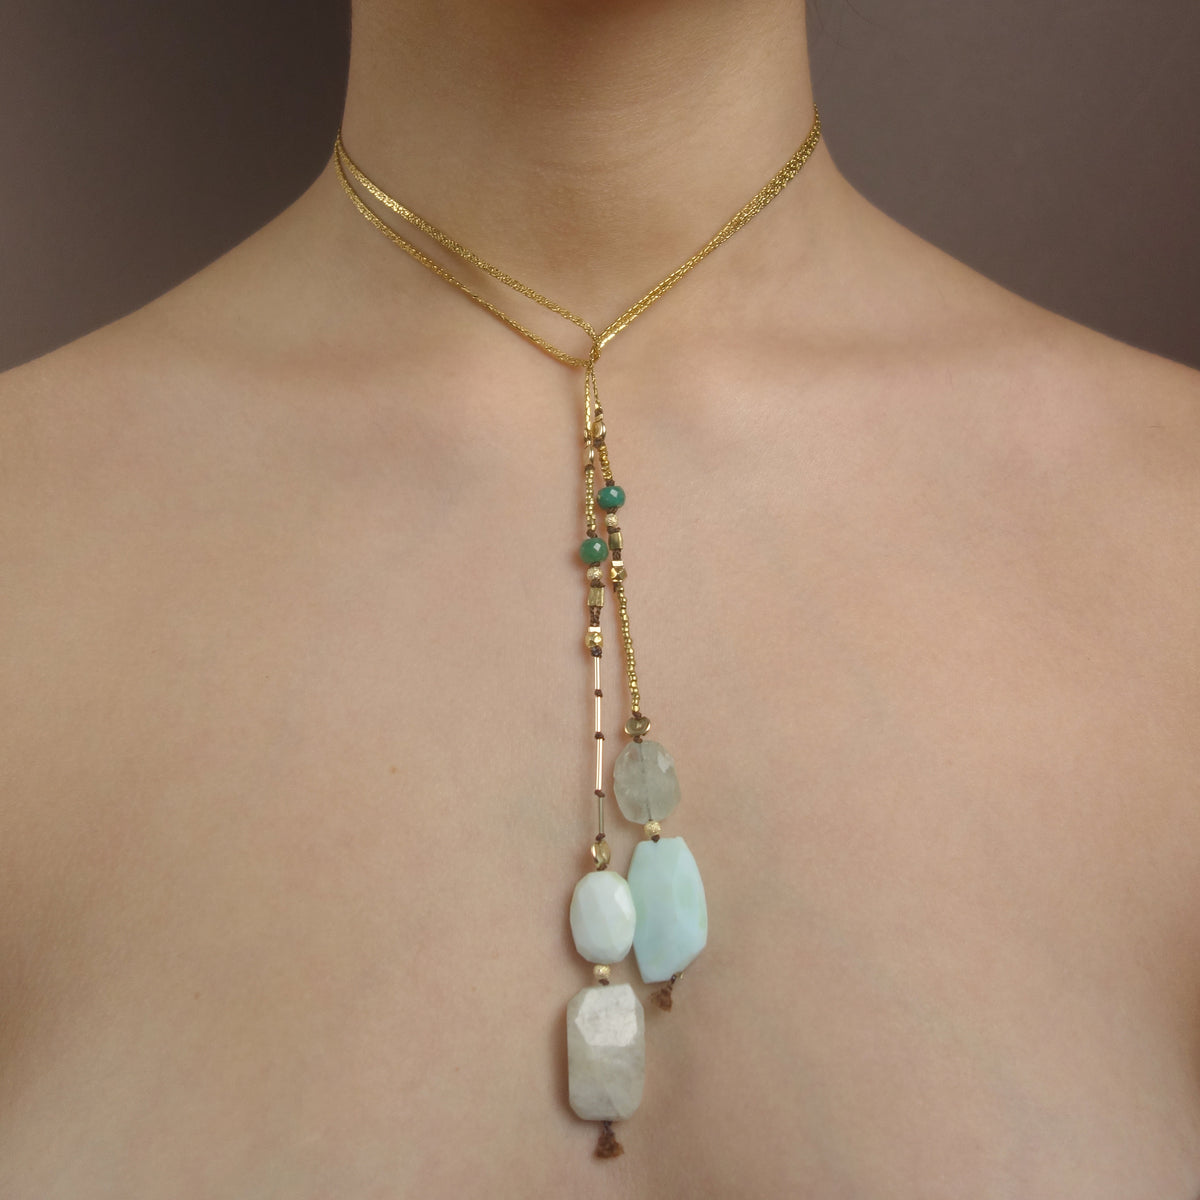 Opal, Aquamarine, Emerald, Gold DELICIOUS necklace